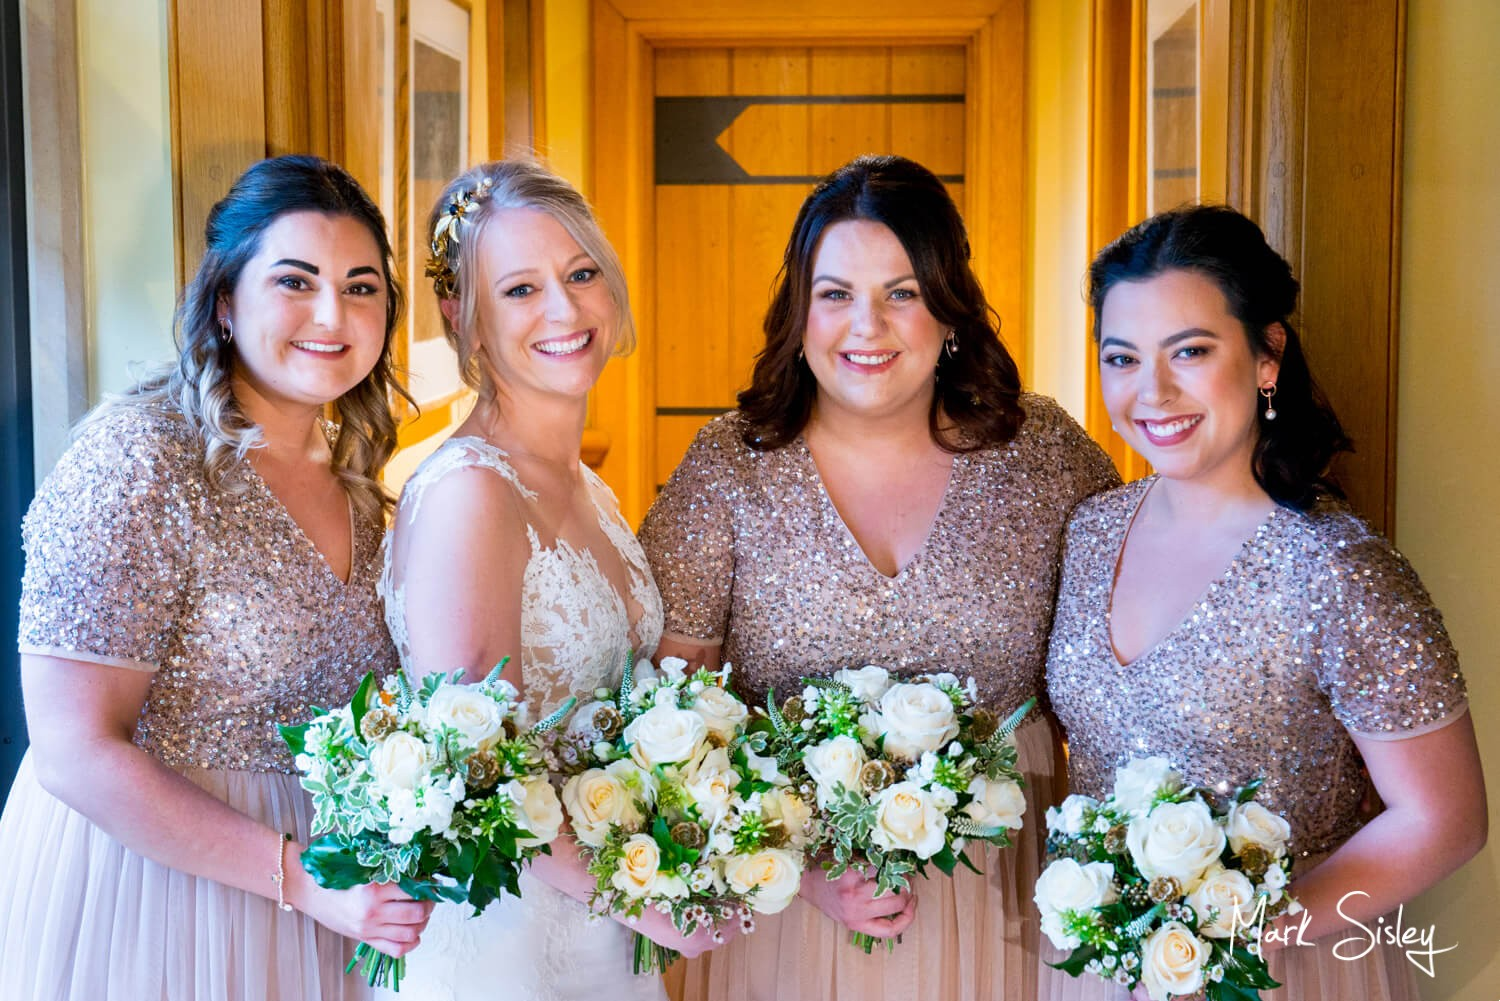 Bride & her bridesmaids at her Waddesdon Dairy winter wedding